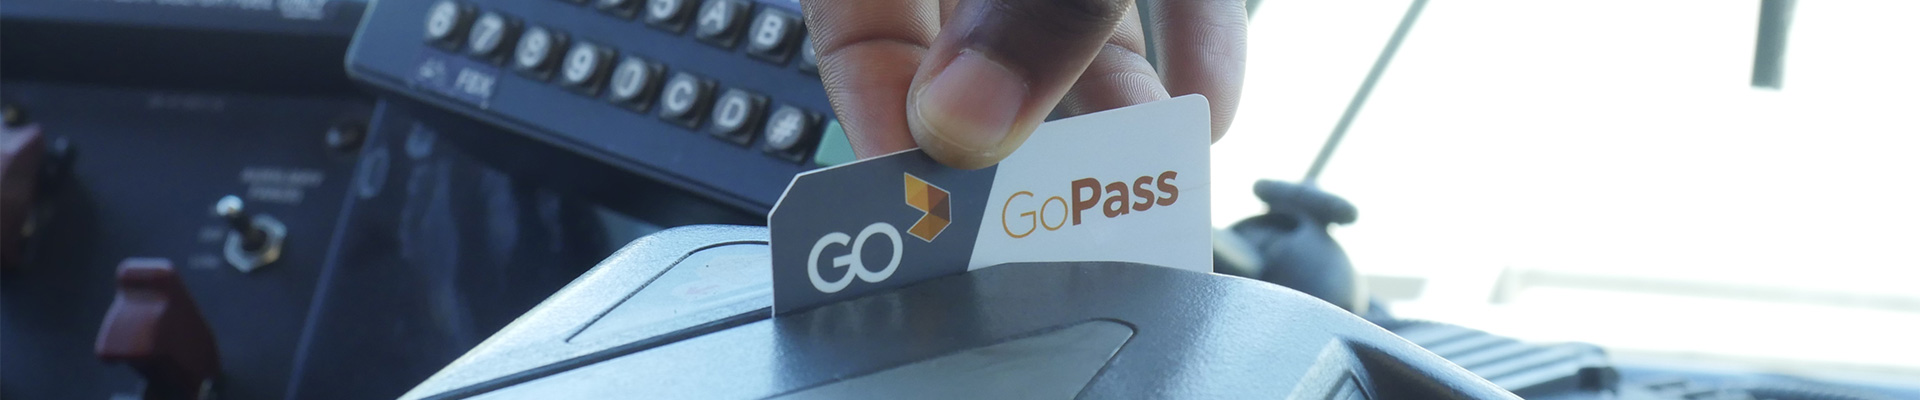 GoPass being swiped though onboard bus fare box